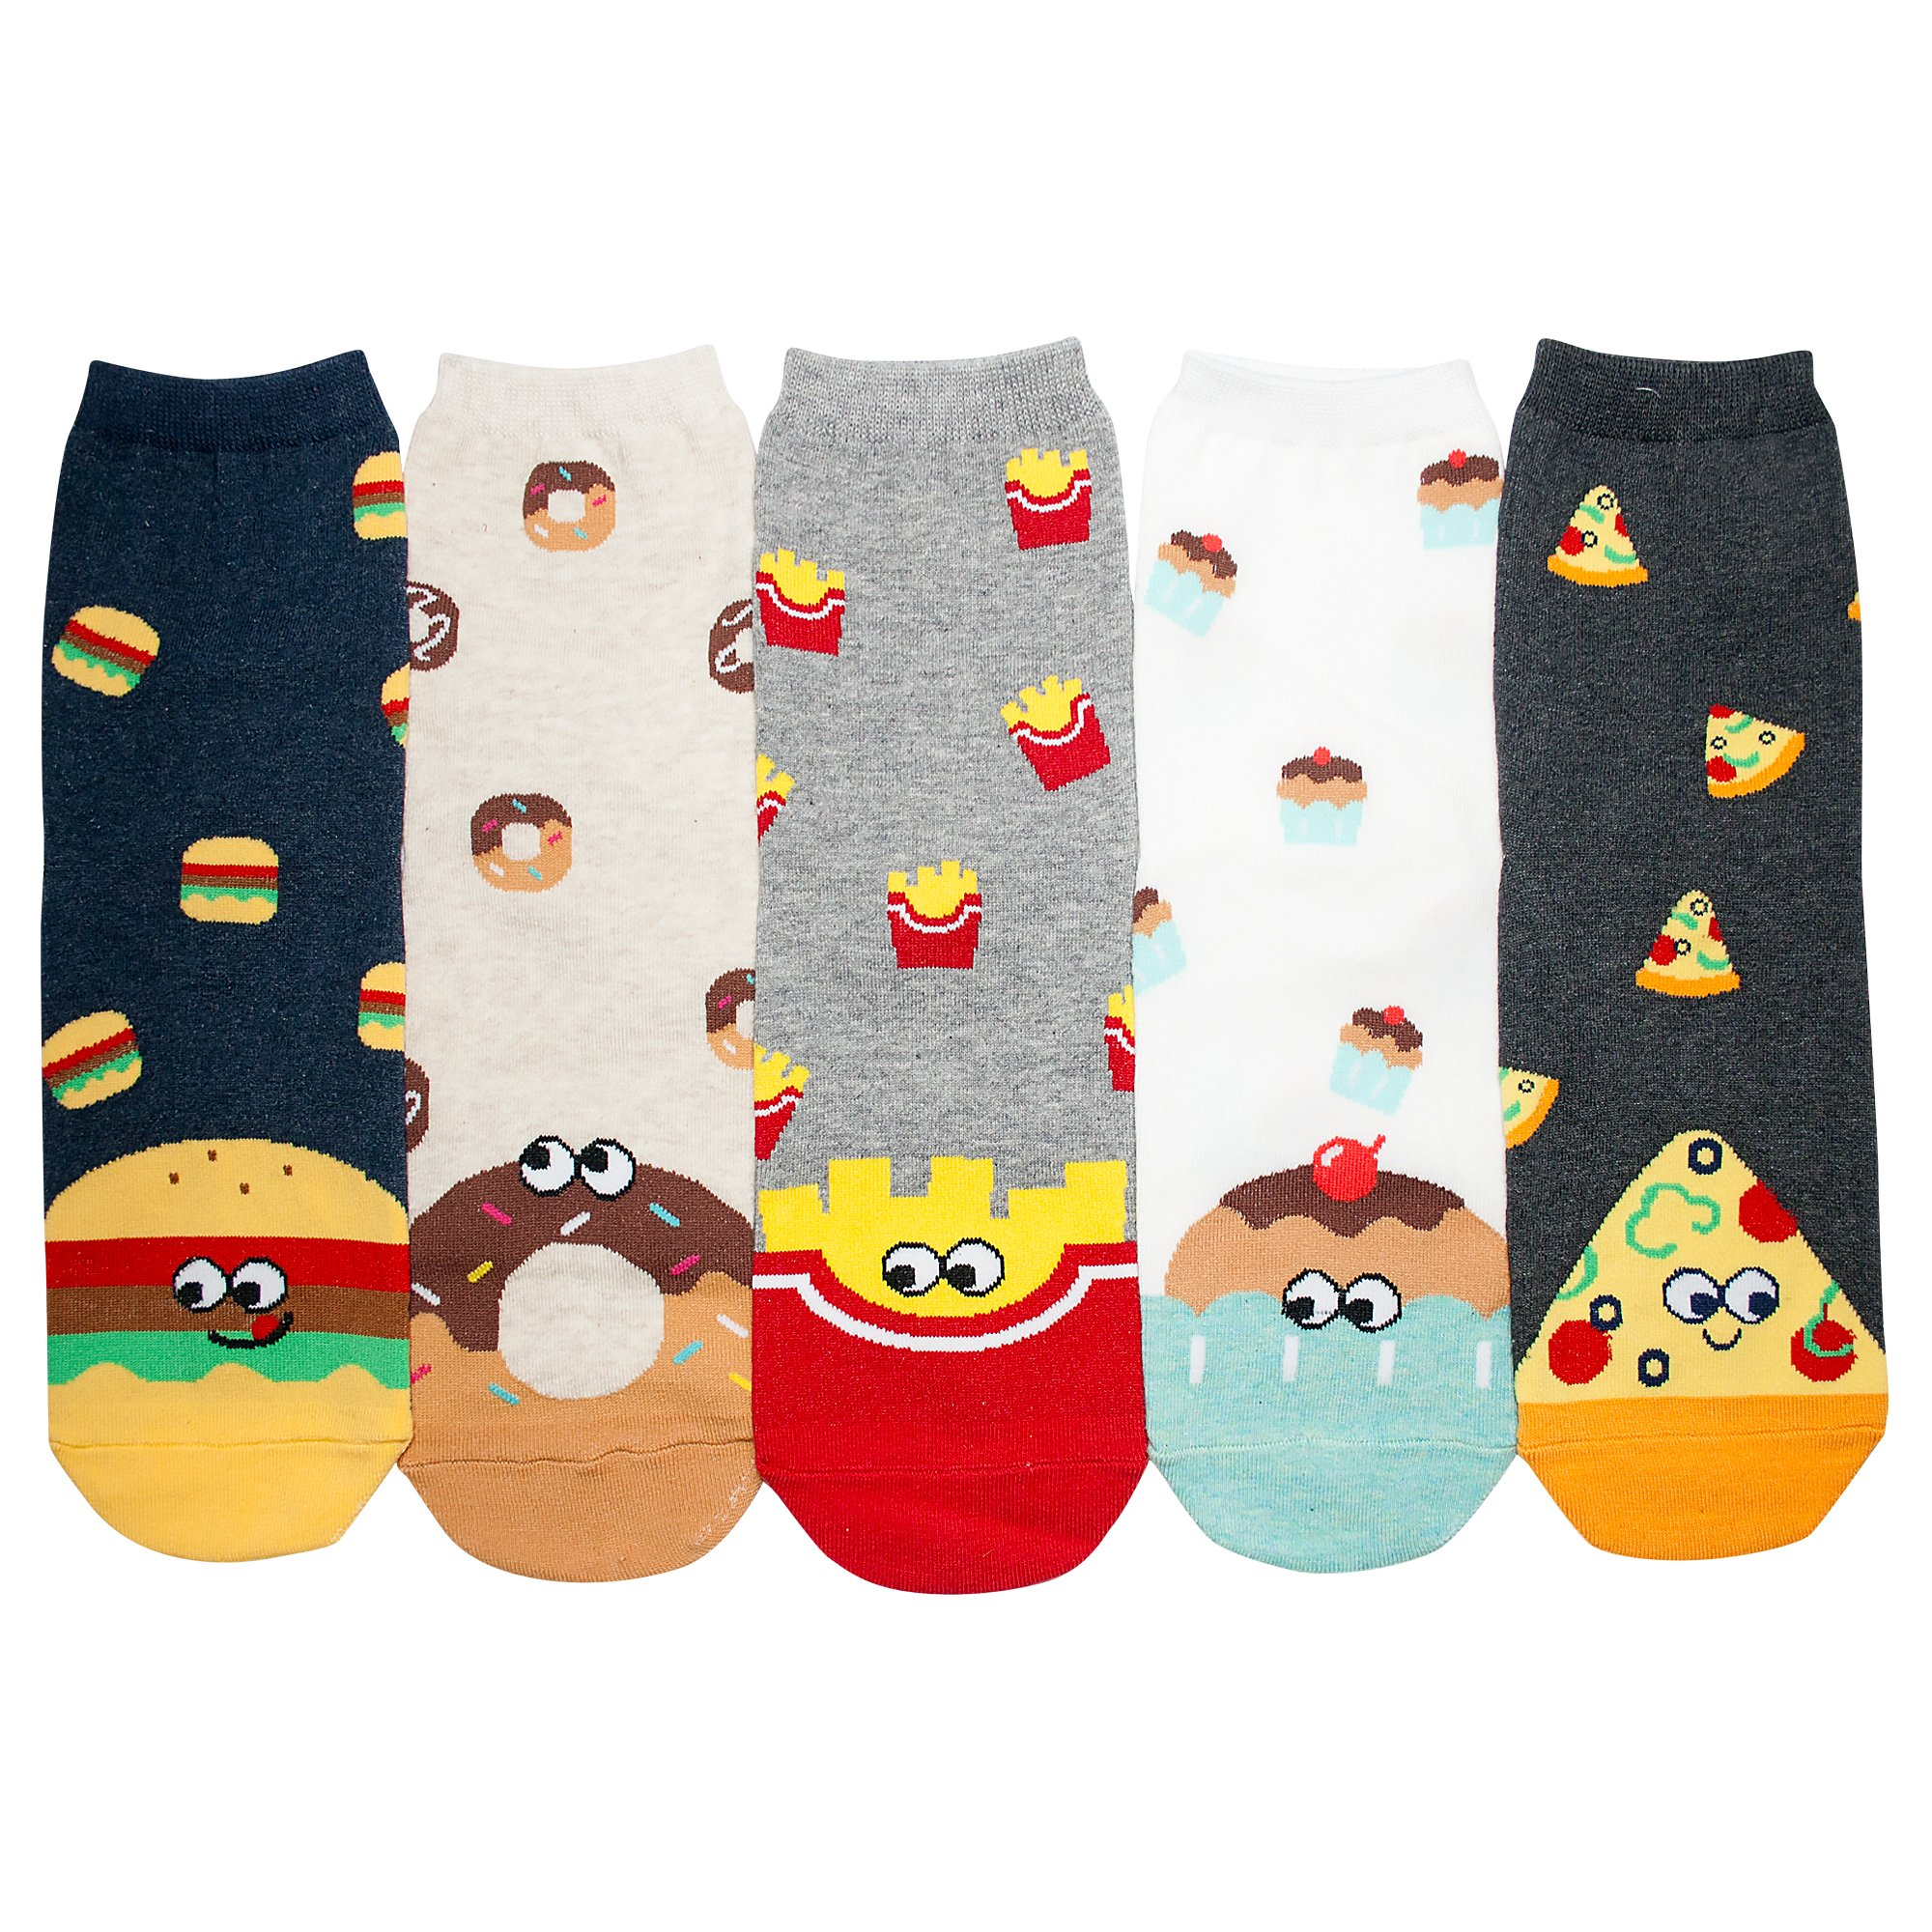 YourFeet Women's 5 Pack Cotton Fun Food Cupcake Designed Novelty Crew Socks Gift Size 6-9 (Foodie - 5 Pairs)